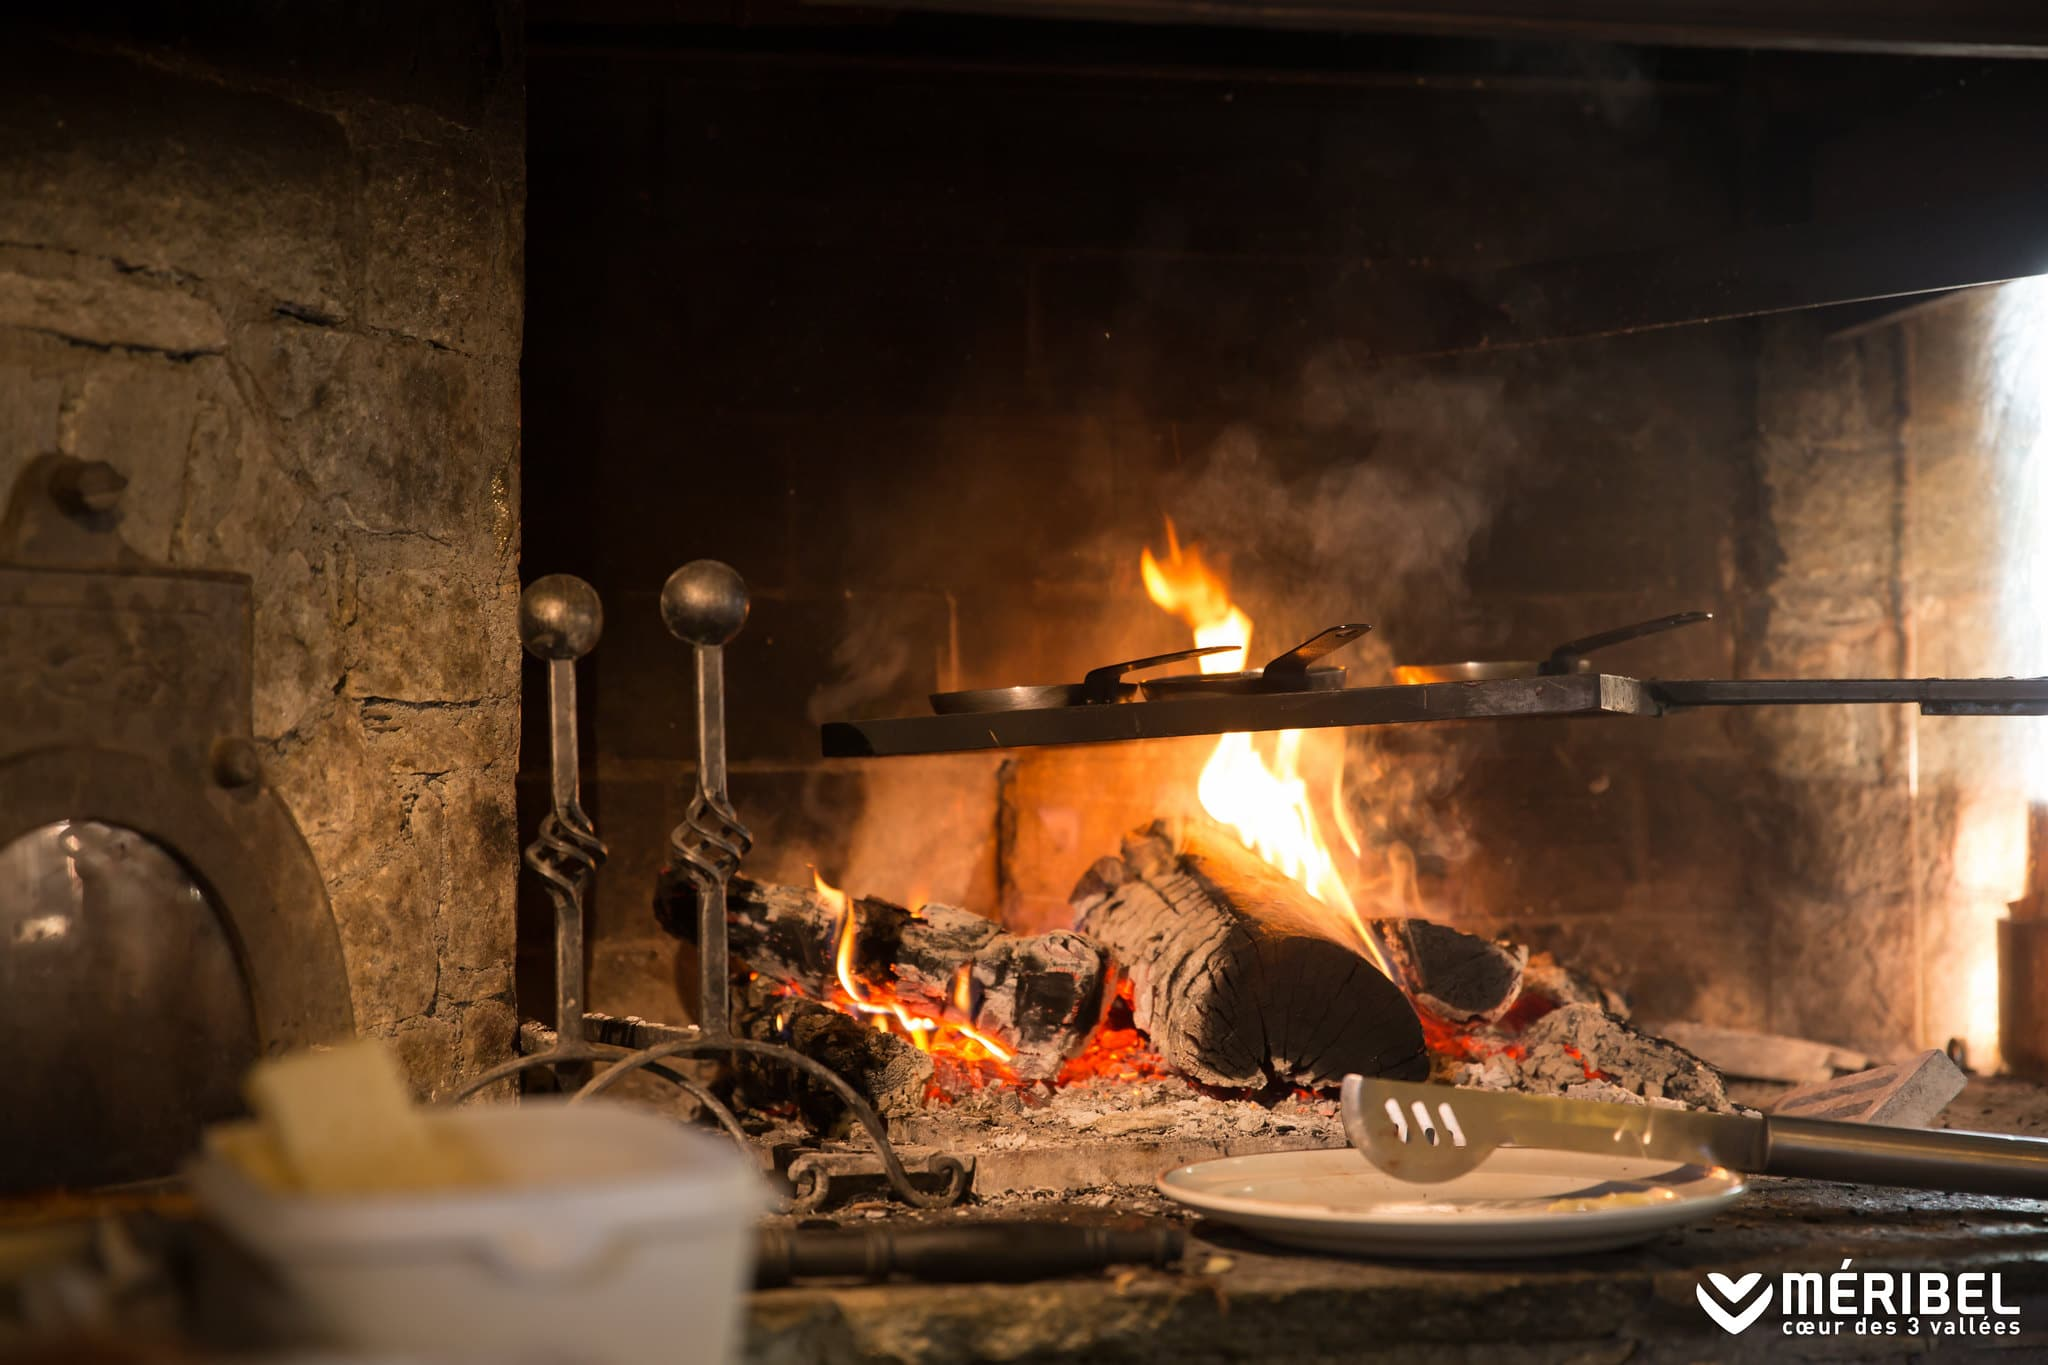 Roaring Fire In Our Luxury Chalets In Meribel And Courchevel